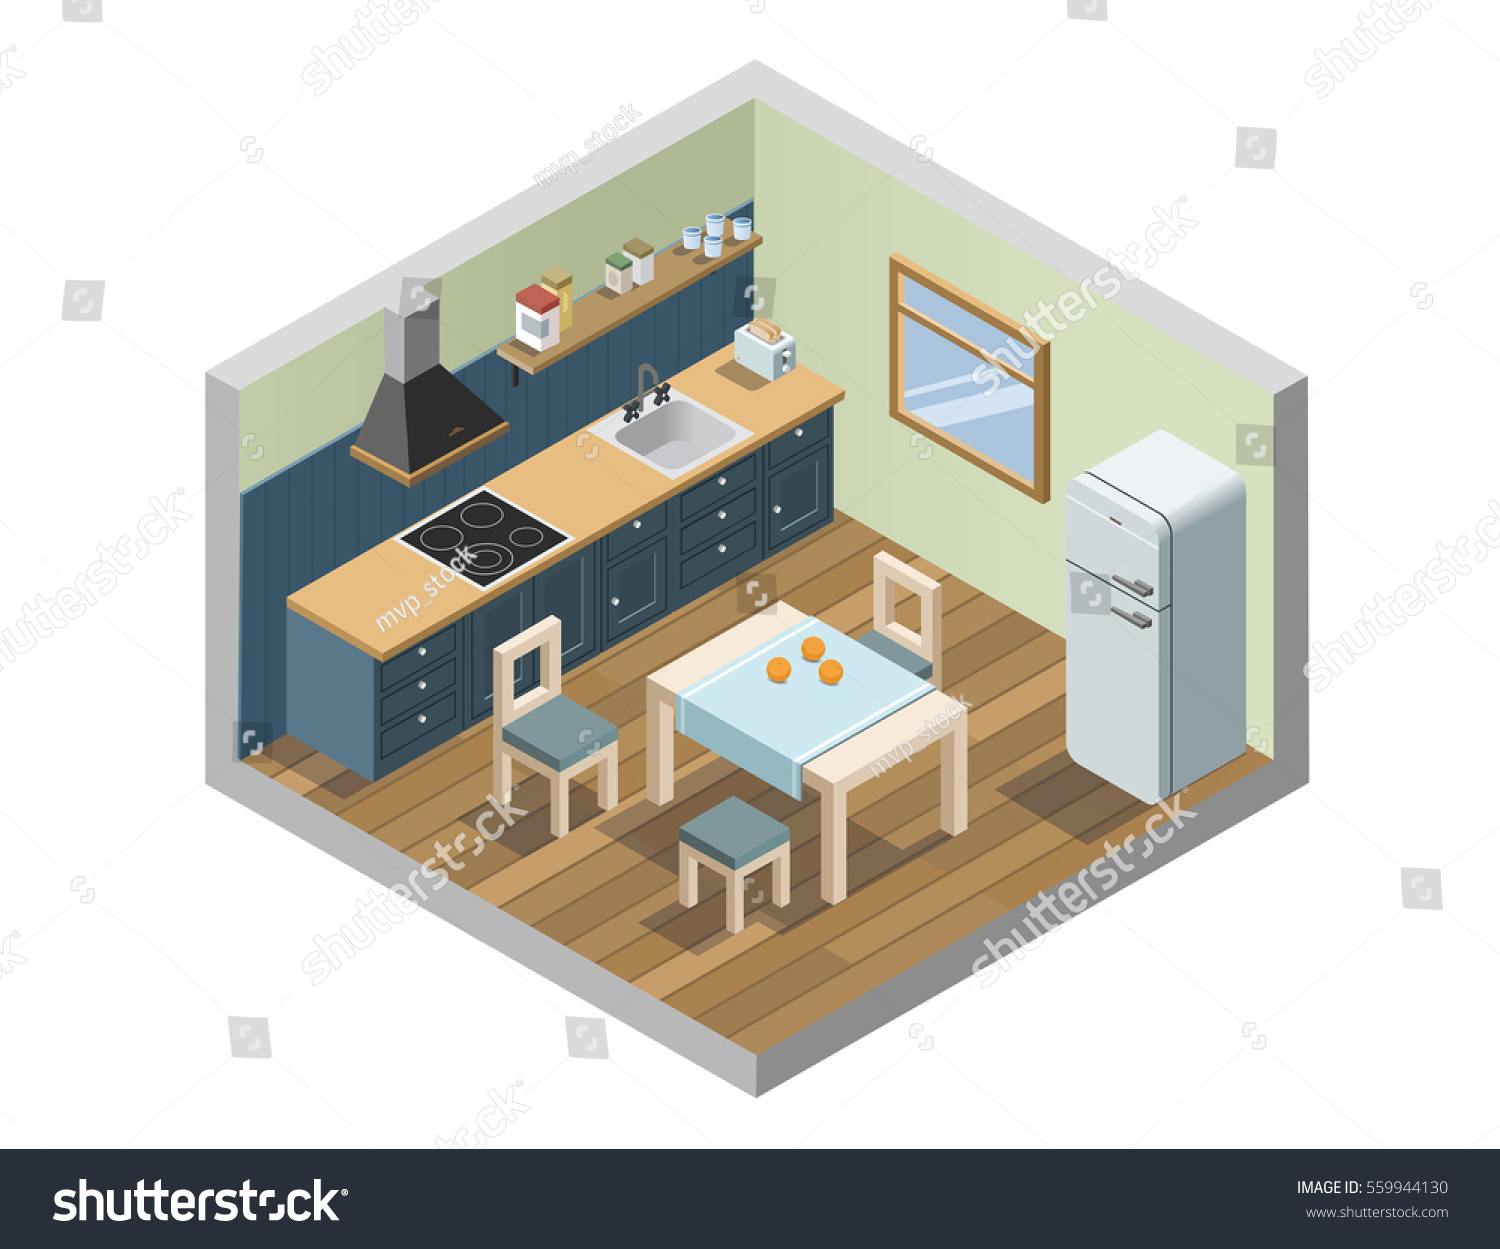 Vector Isometric Set Of Kitchen Furniture And Household Appliances Icons,  3d Flat Interior Design Of